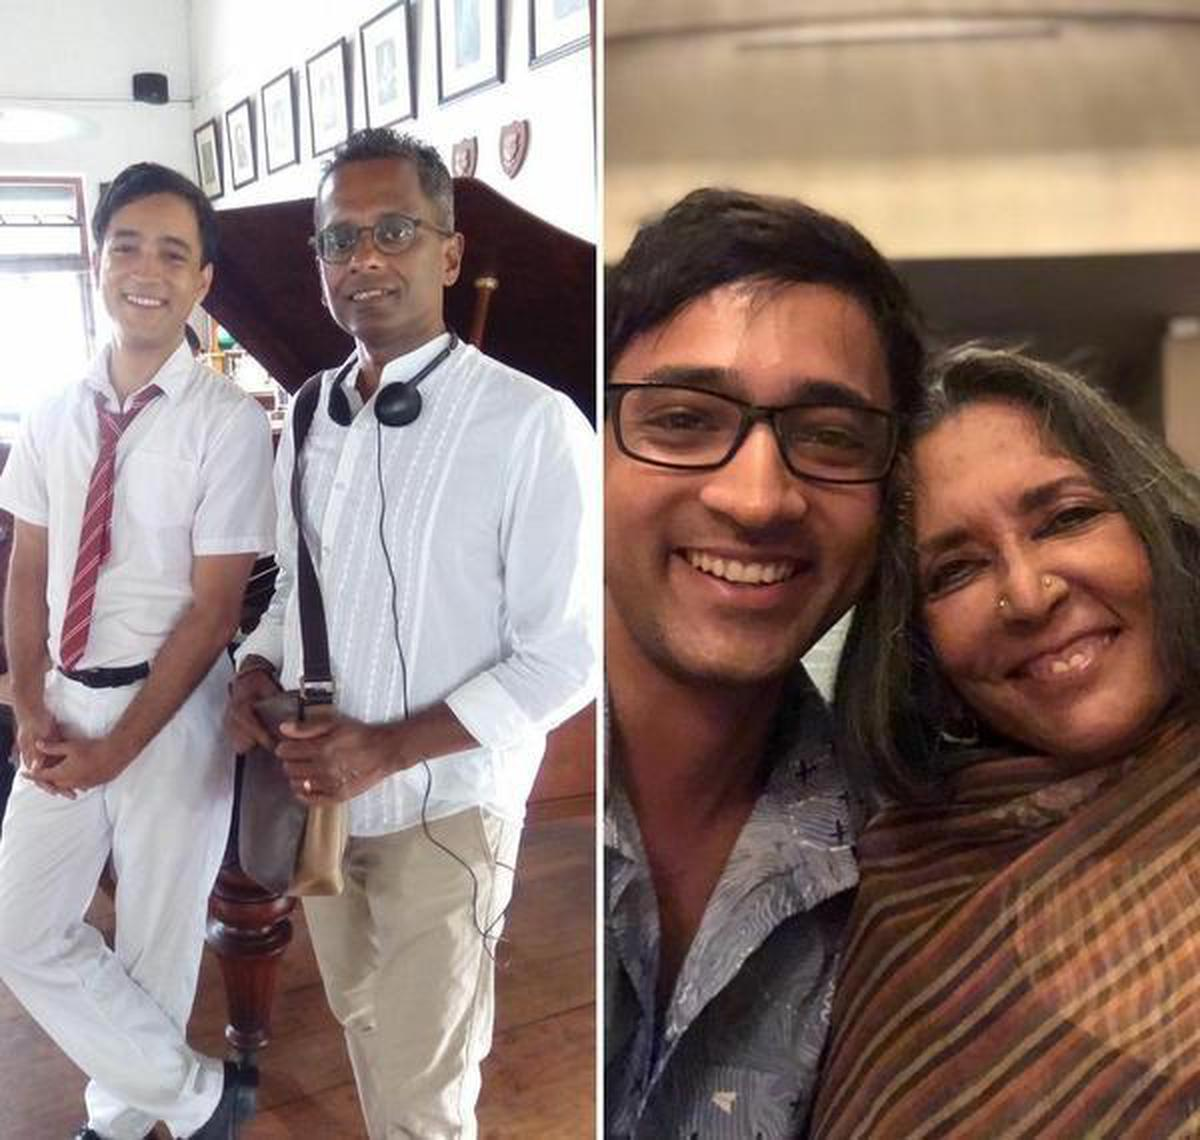 Ingram on set with writer Shyam Selvadurai, and (right) at wrap up with Deepa Mehta